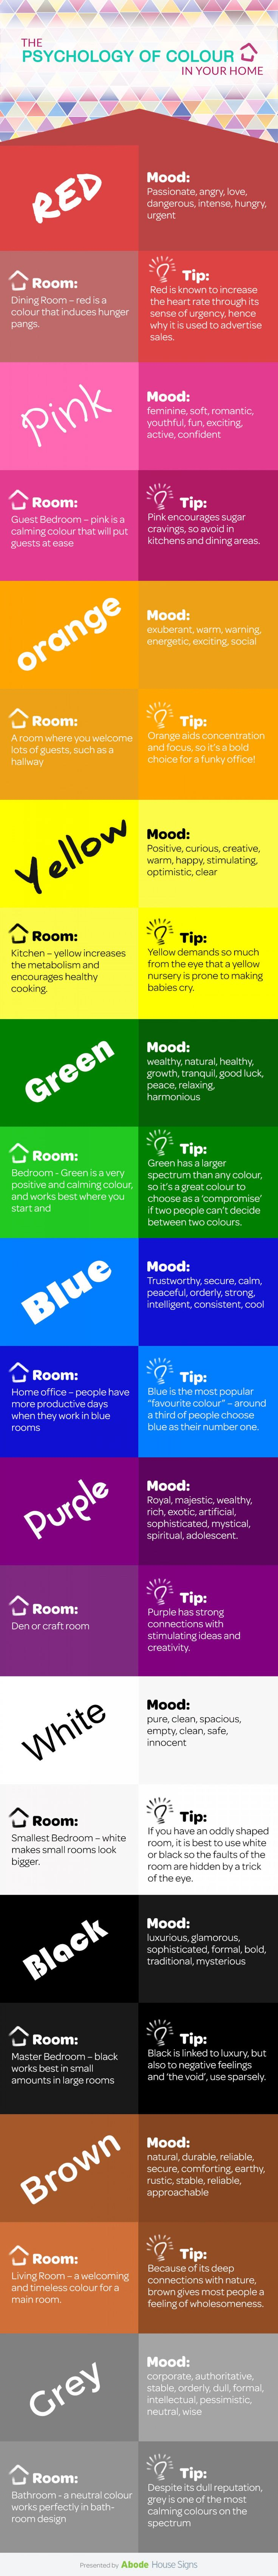 For painting in your home. The Psychology of Colour #infographic